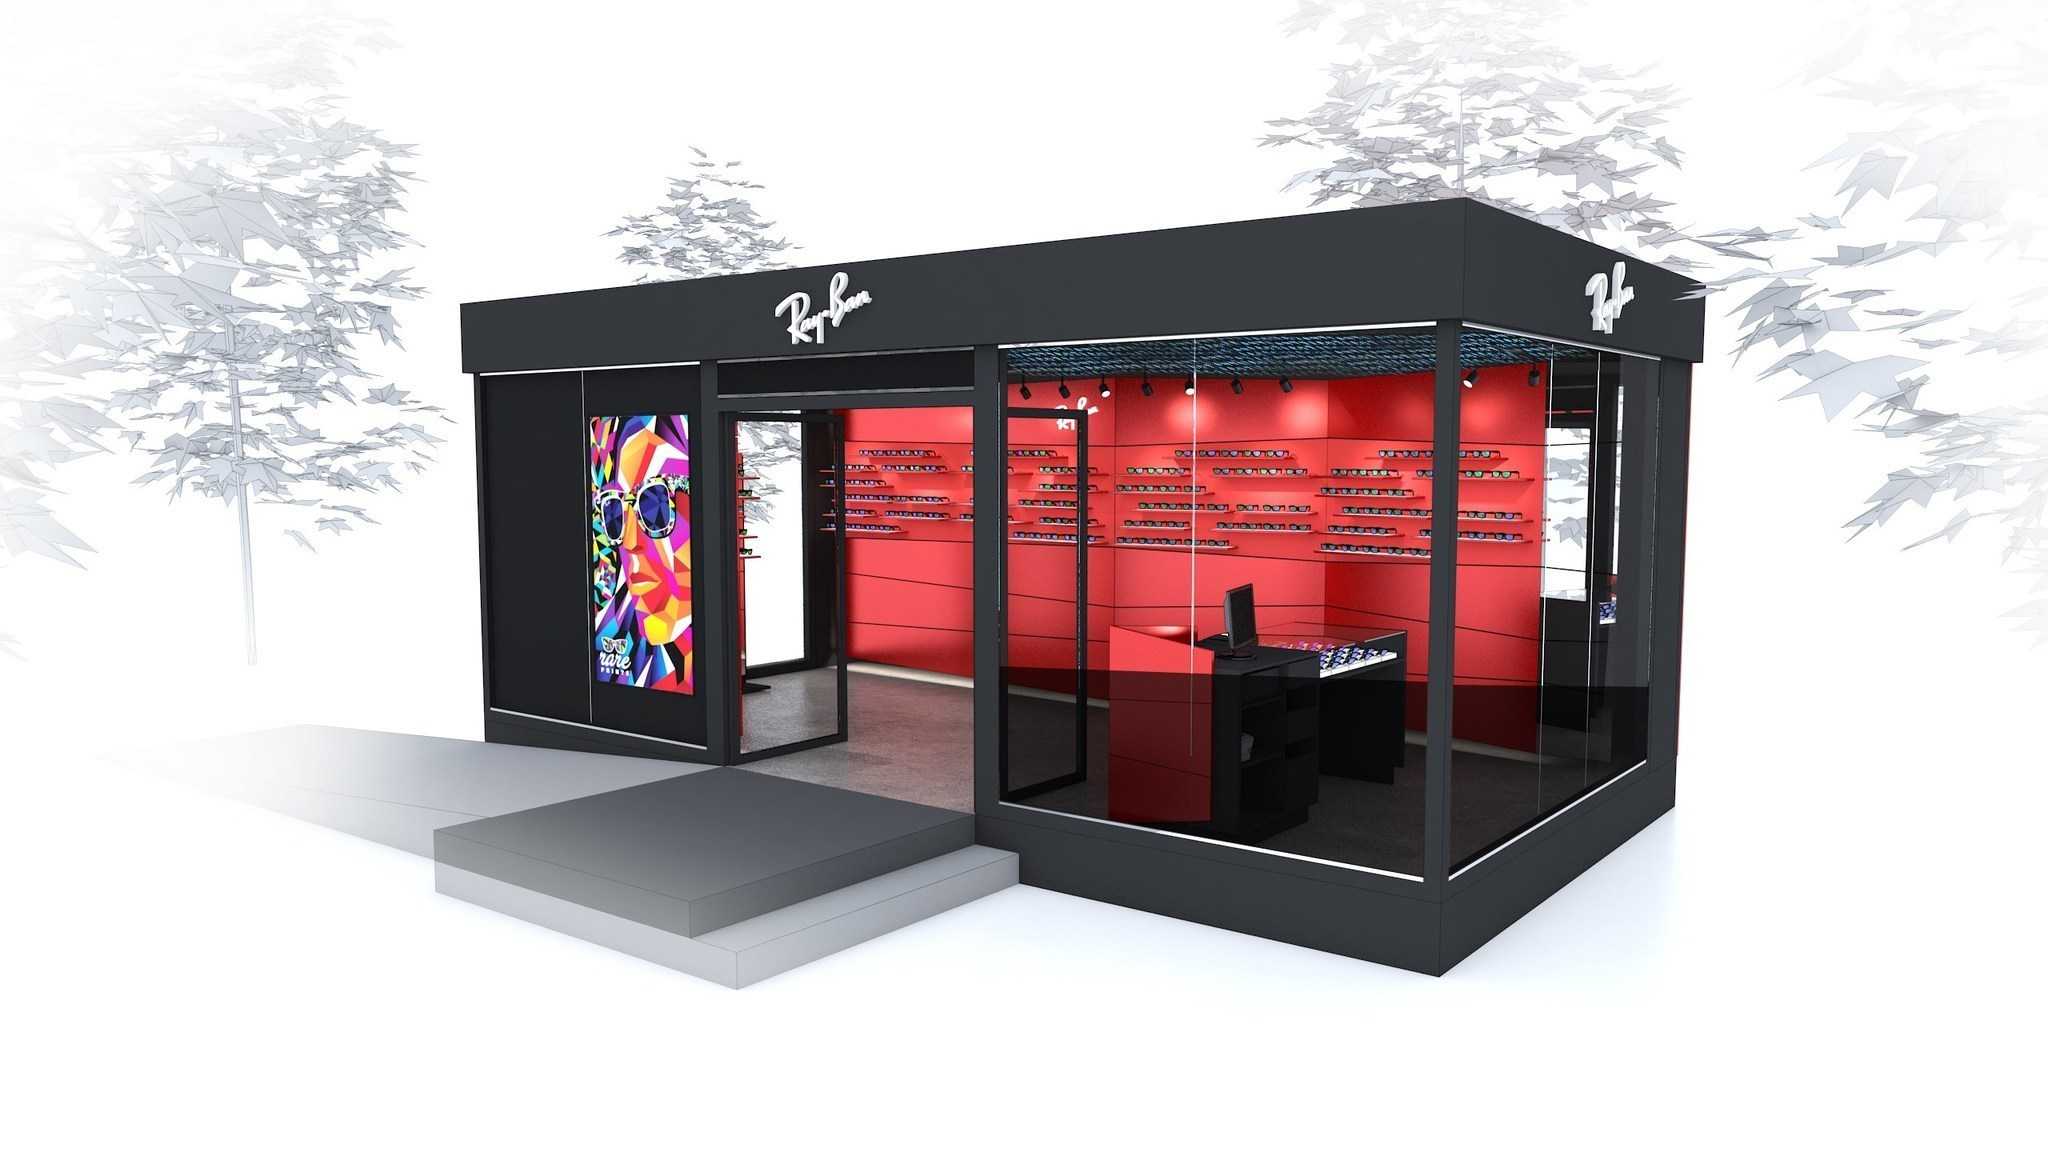 ray ban store  Ray-Ban pops up at the Grove in Los Angeles - LA Times